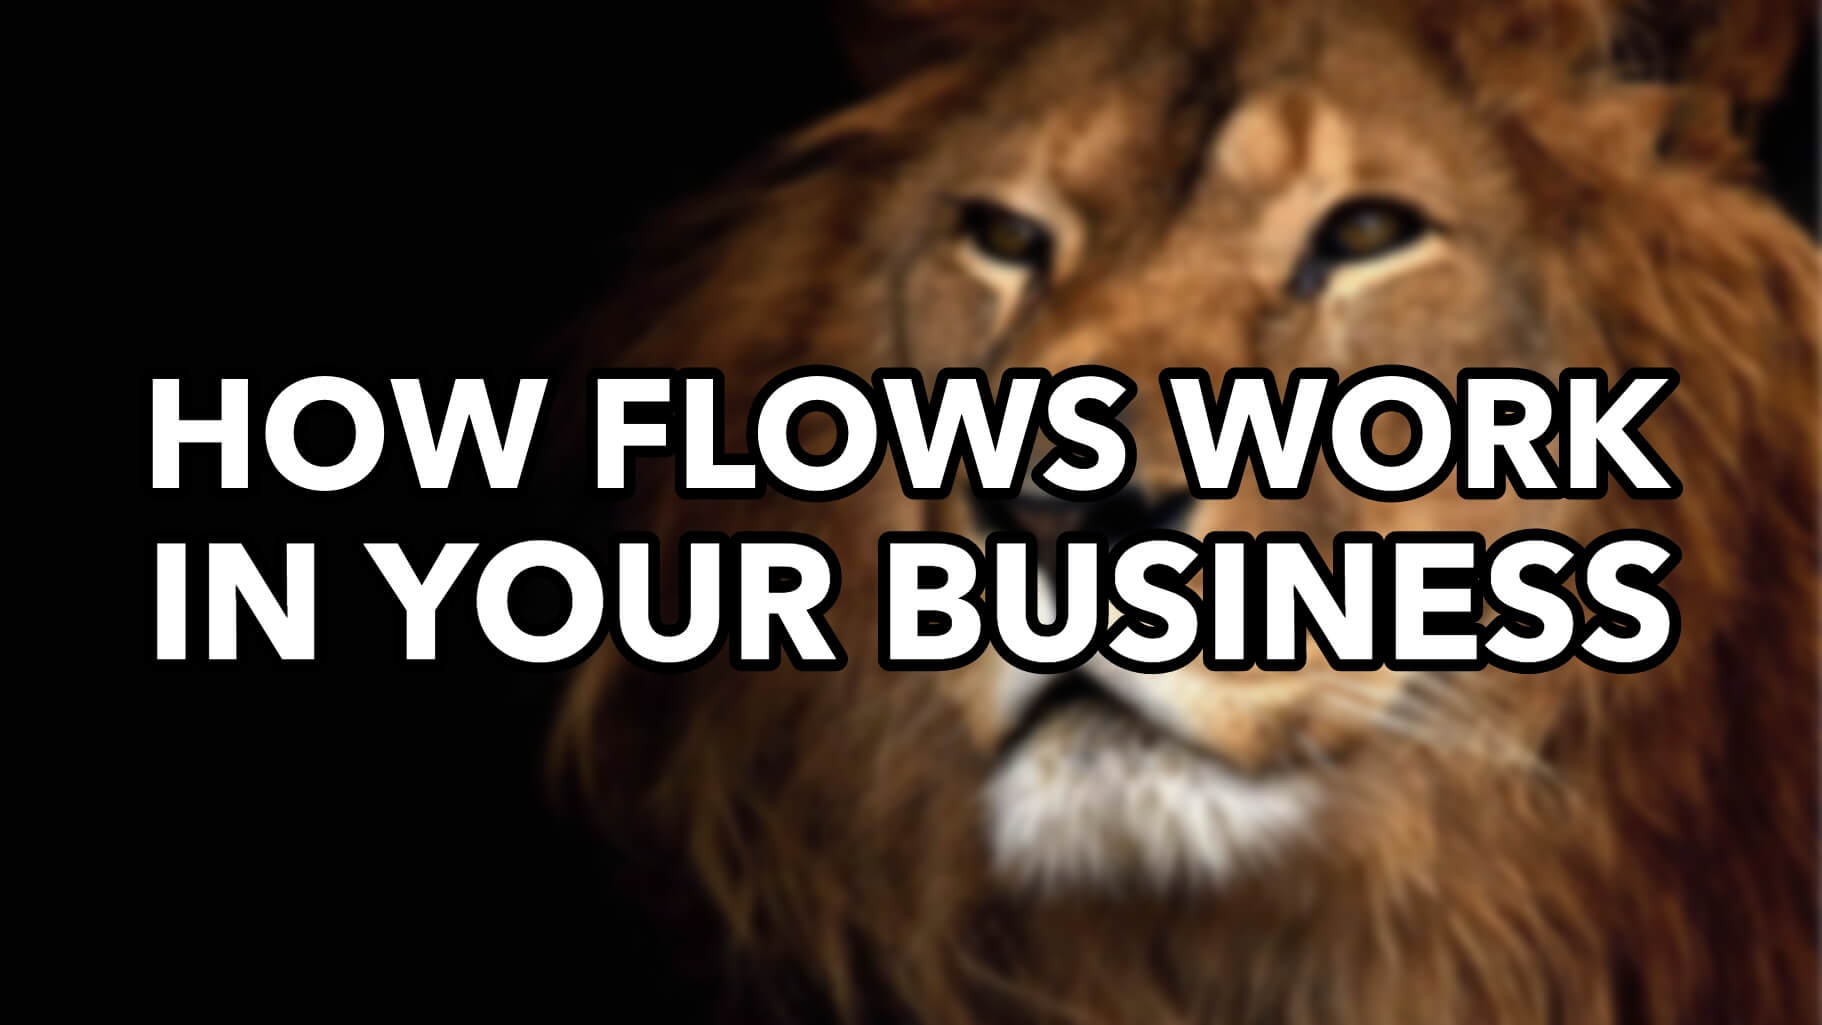 How Flows Work In Your Business